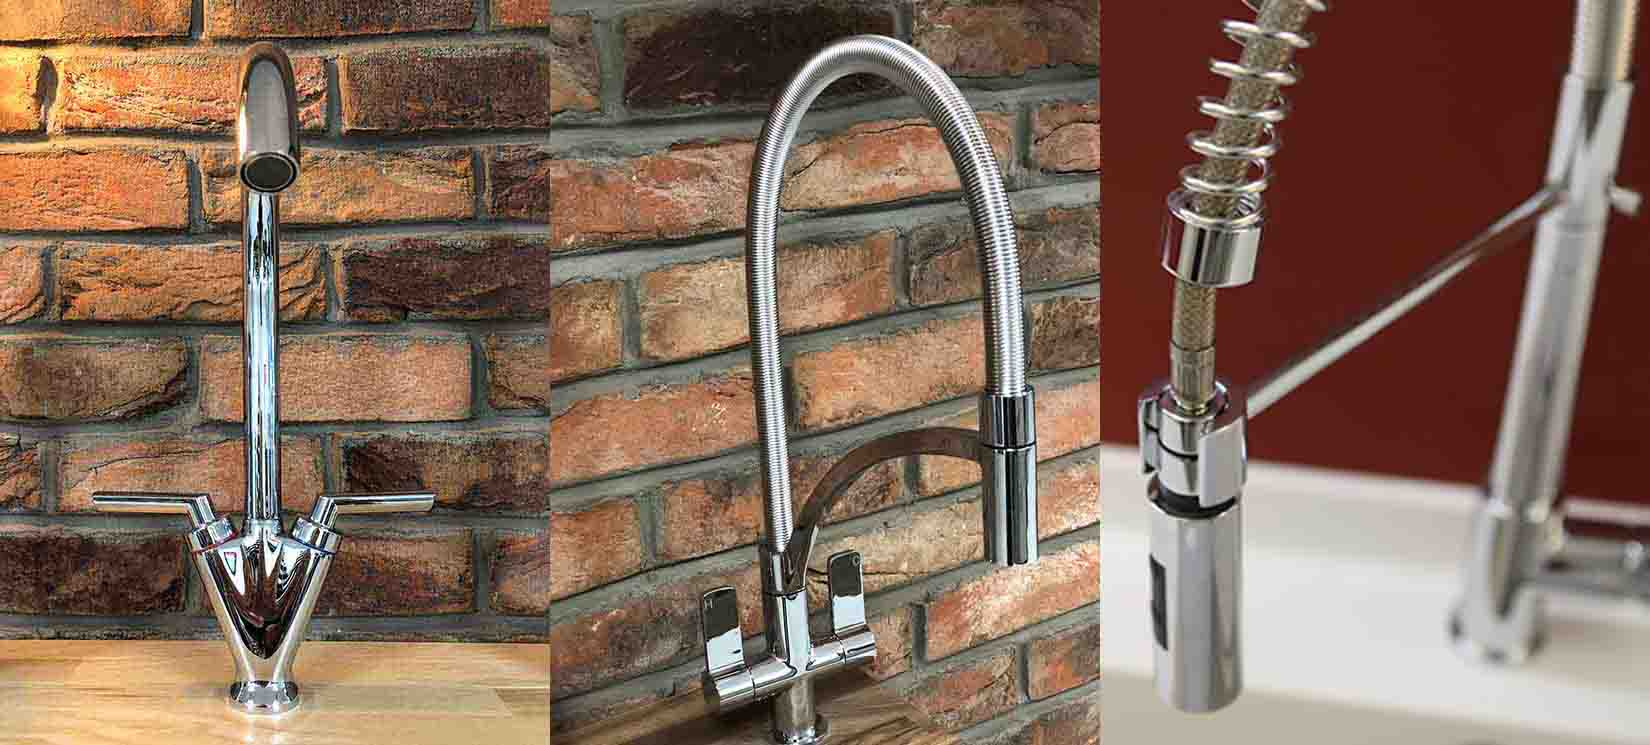 Types of tap spout - swivel, pull-out spray and spring neck taps